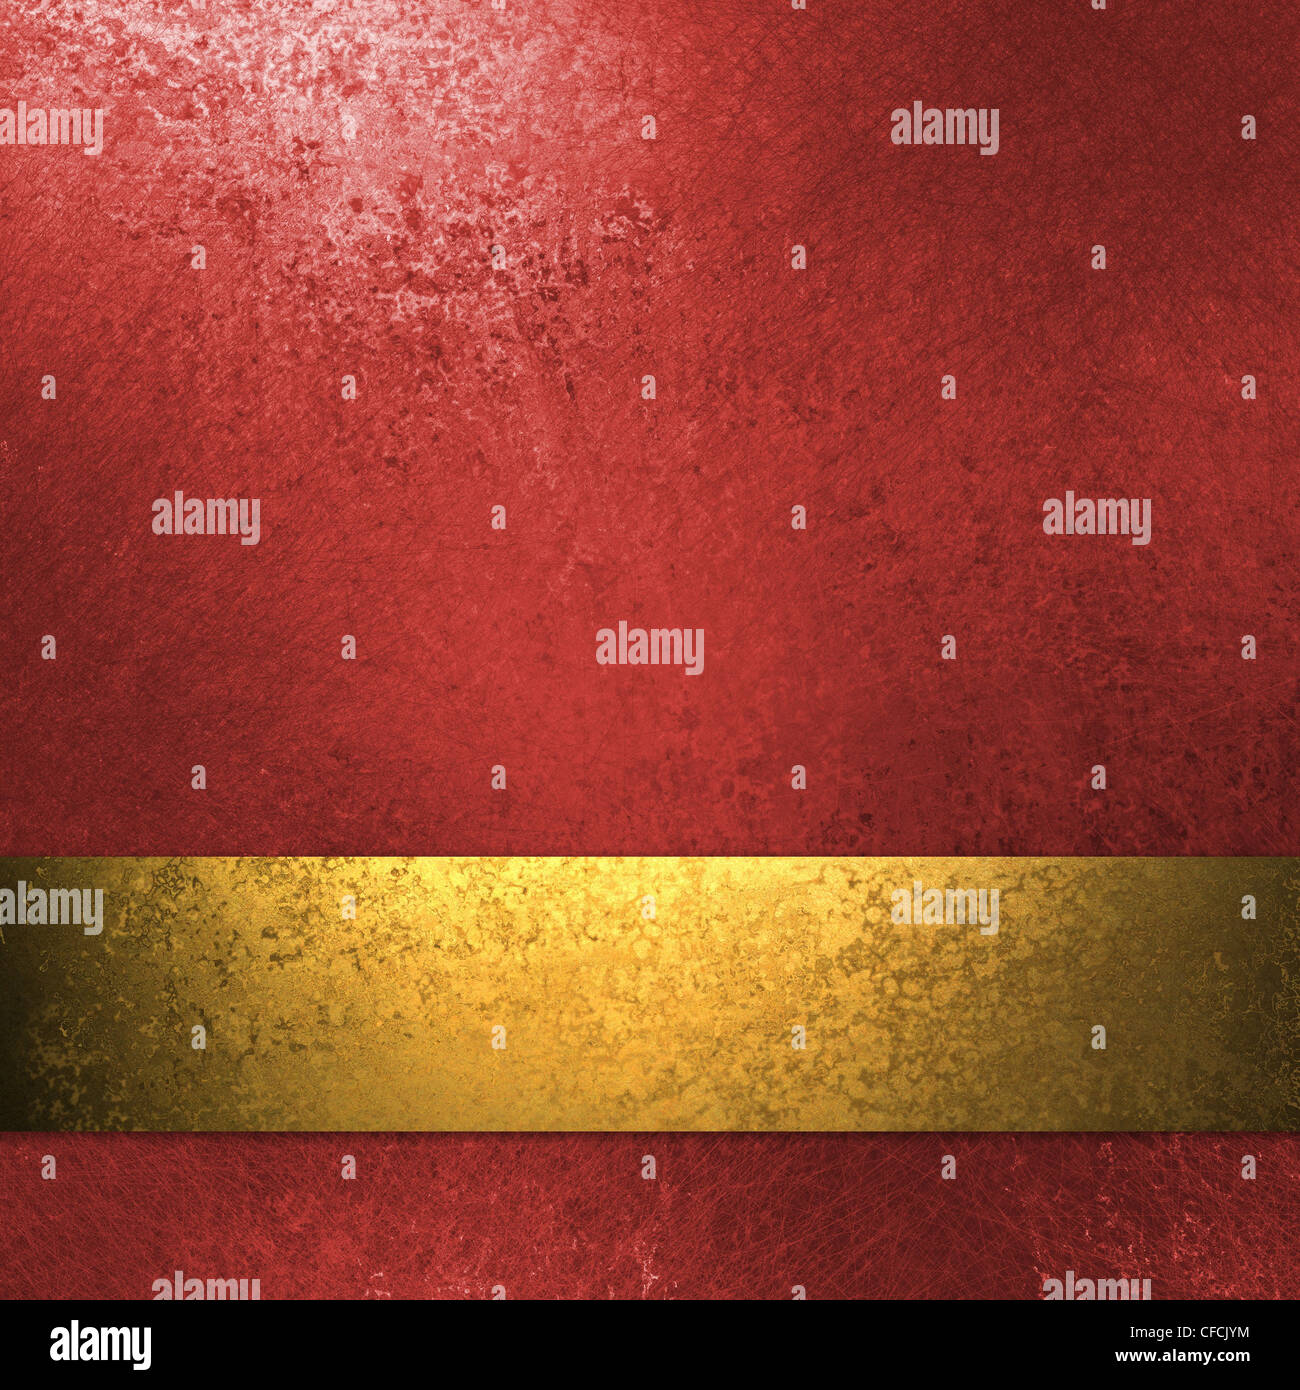 elegant red background with gold ribbon, grunge texture, and copy space - Stock Image